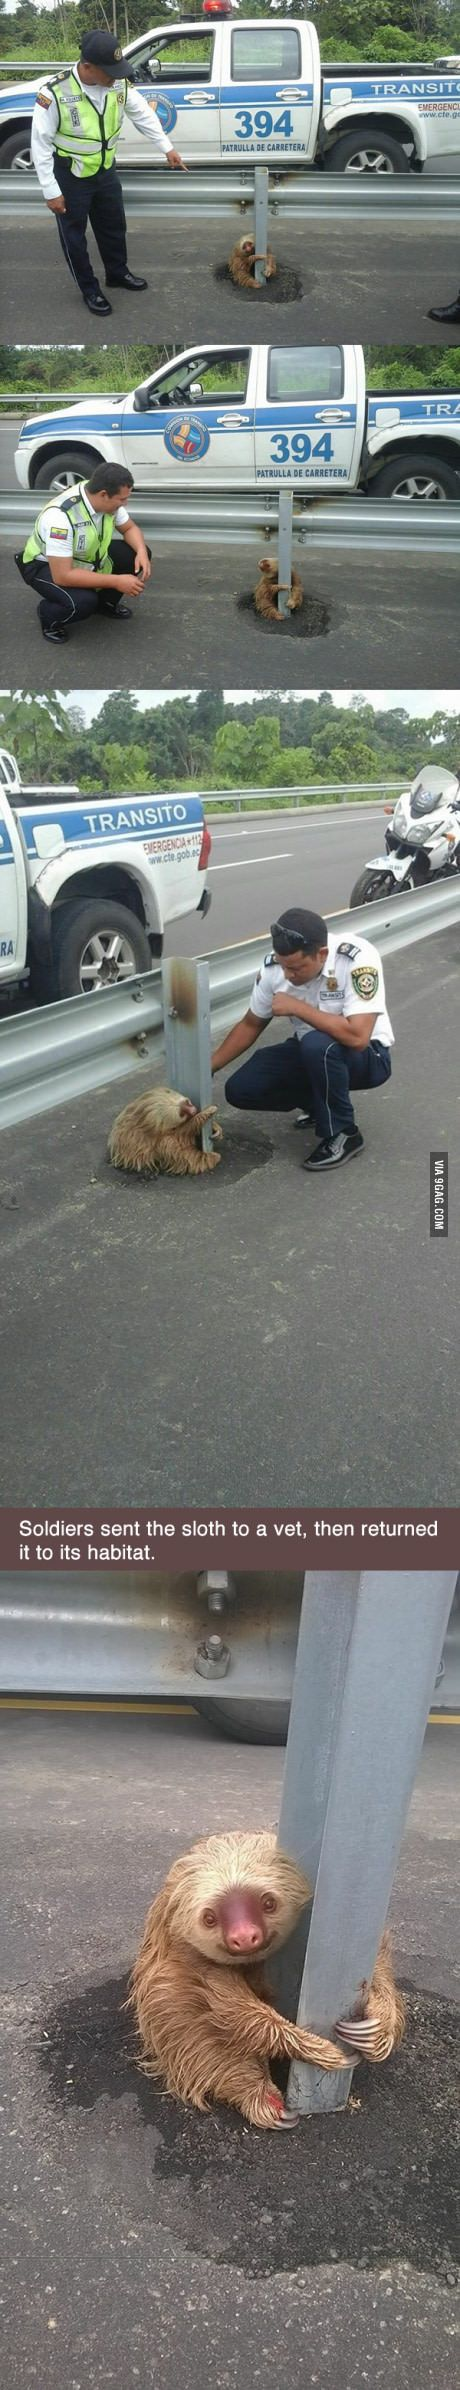 Little sloth tries to cross the highway in Ecuador, gets scared, can't move. Poor baby! Thank god they saved him!